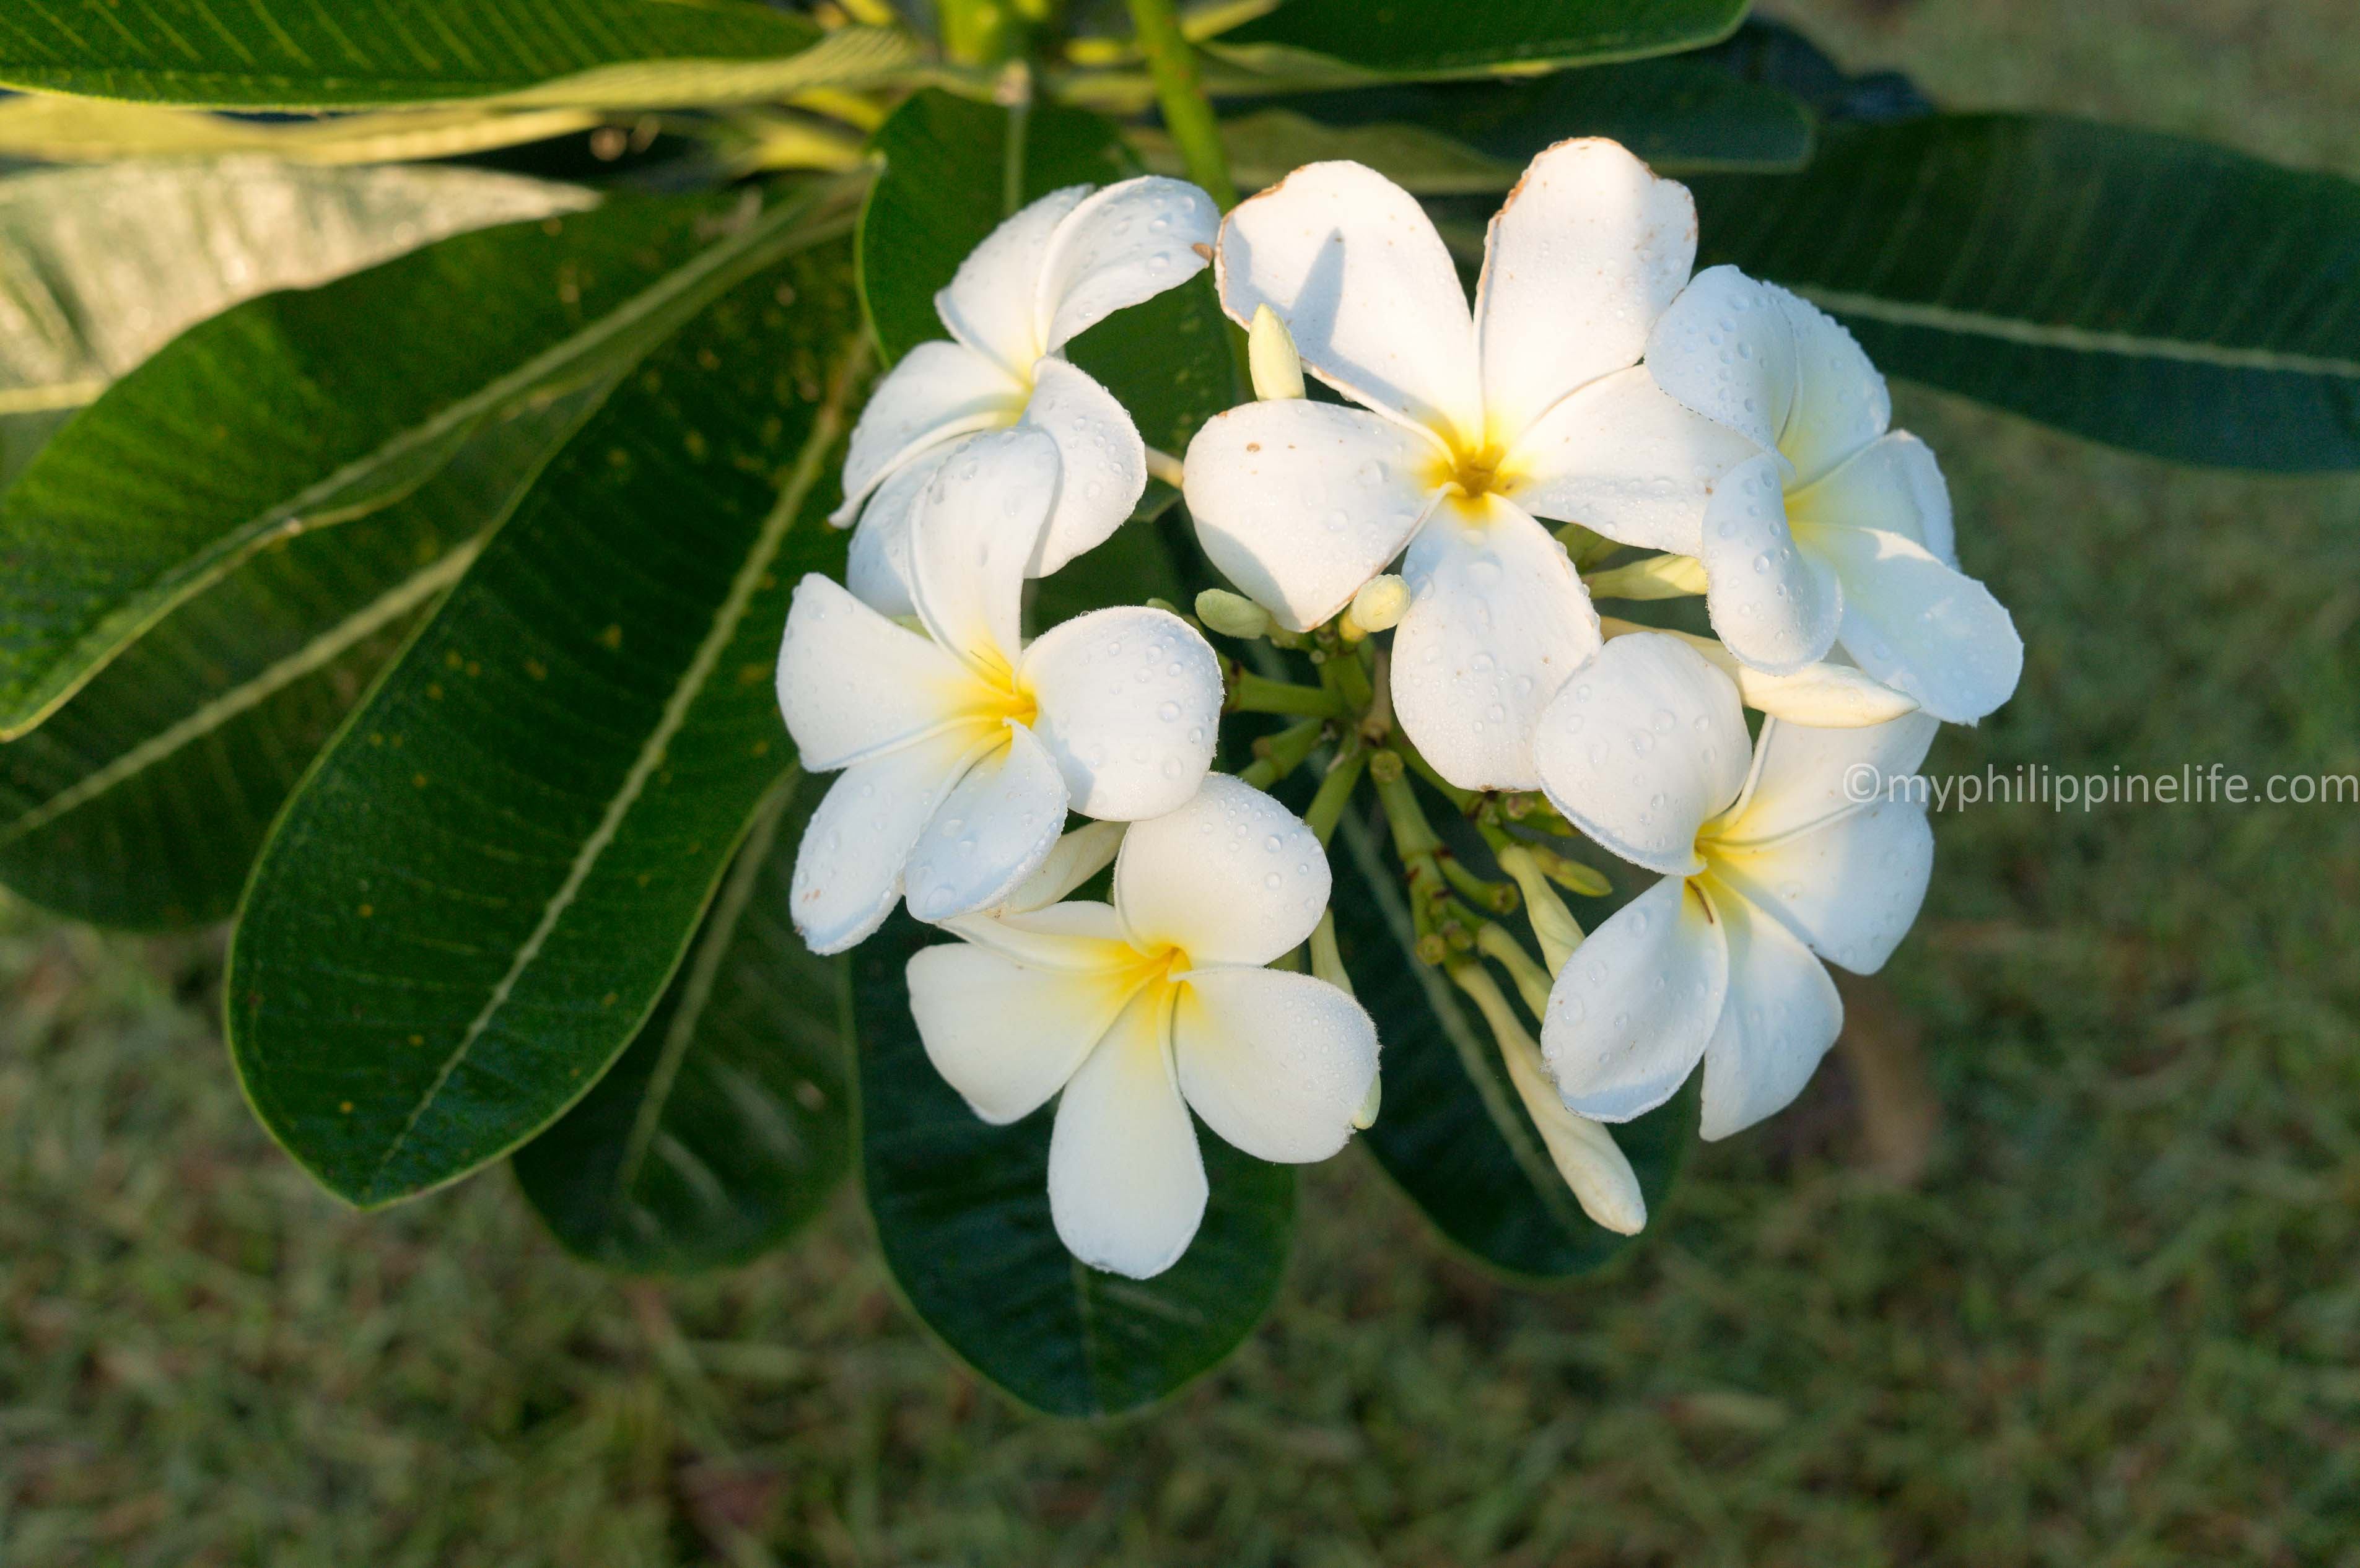 Philippine Trees and Garden Flowers | My Philippine Life